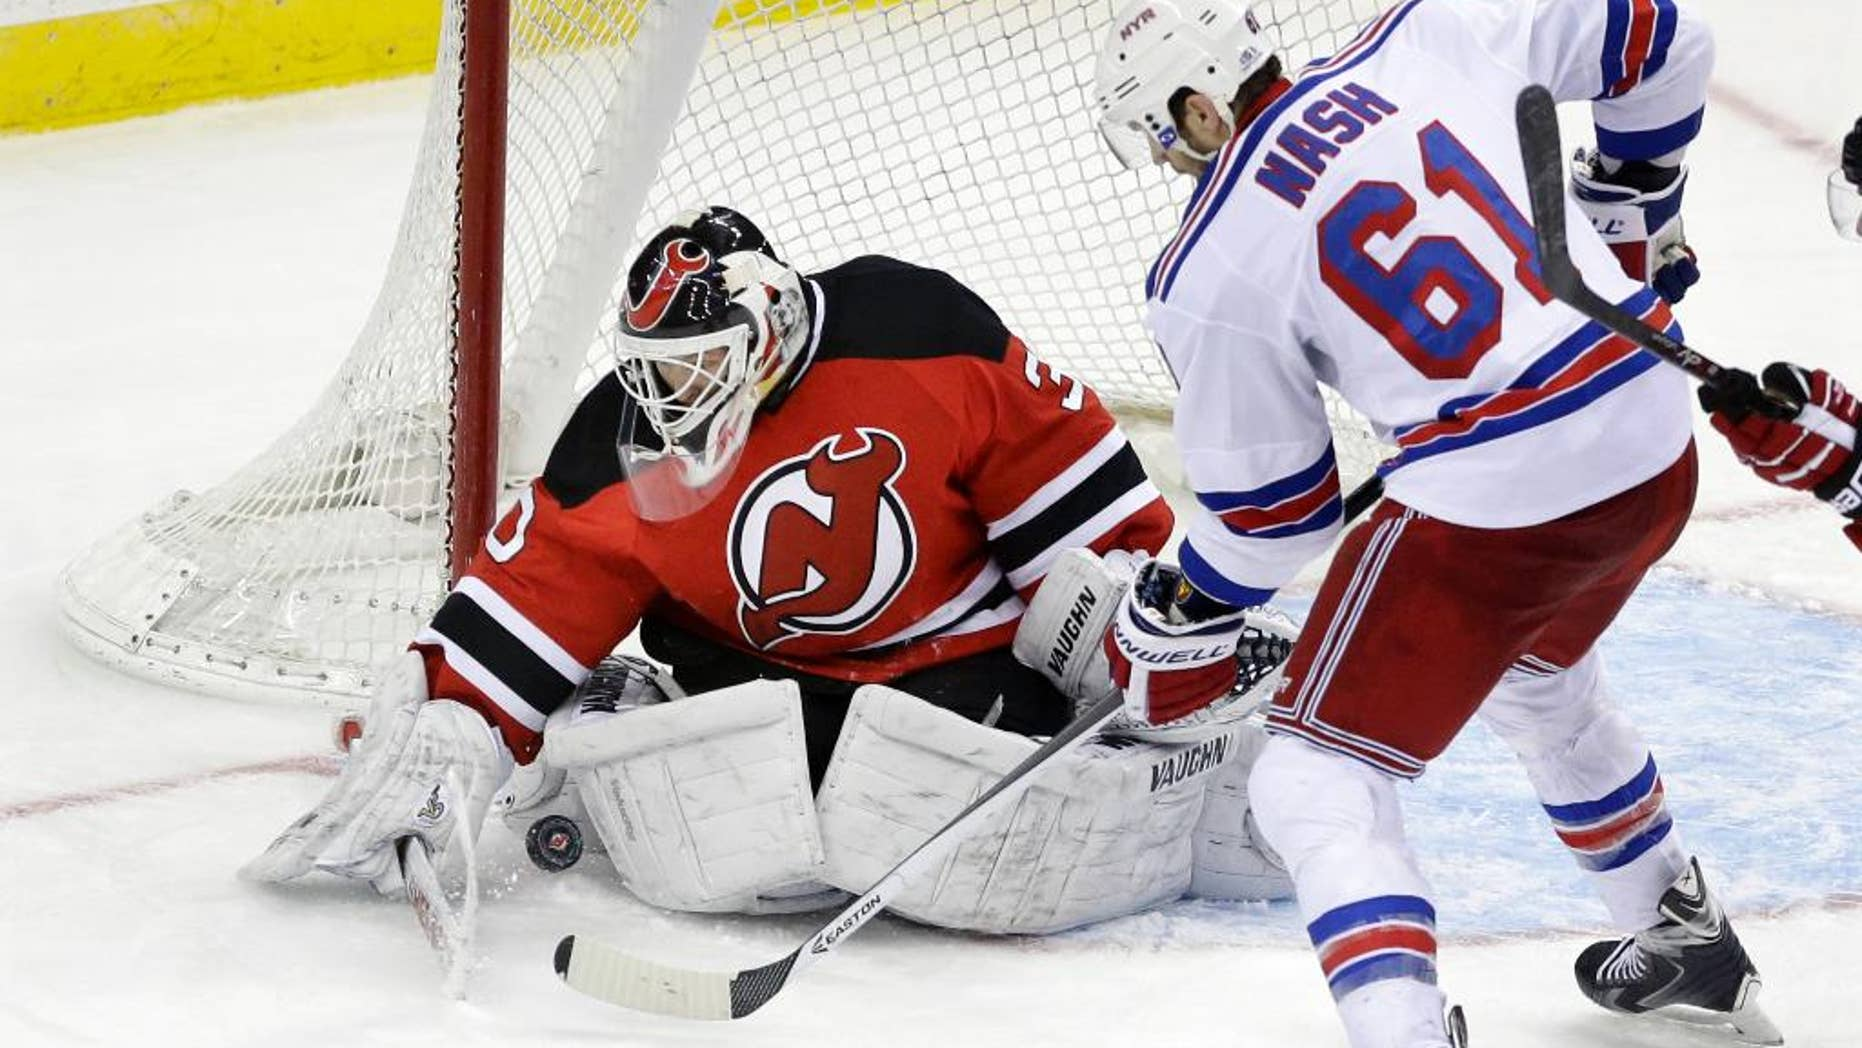 FILE - In this March 22, 2014, file photo, New Jersey Devils goalie Martin Brodeur (30) stops a shot by New York Rangers' Rick Nash (61) during the third period of an NHL hockey game in Newark, N.J. Brodeur wasn't ready to call it a career at 42 after the Devils chose not to re-sign him. But he didn't get any offers until Blues general manager Doug Armstrong called Brodeur's agent on Tuesday, Nov. 25, after goalie Brian Elliott sustained a lower-body injury in the Blues' 3-2 shootout loss to the Ottawa Senators. Brodeur, who leads the NHL in wins (688), games played (1,259), losses (394) and shutouts (124), took part in the morning skate Friday with the Blues, who will face the Edmonton Oilers. (AP Photo/Mel Evans, File)